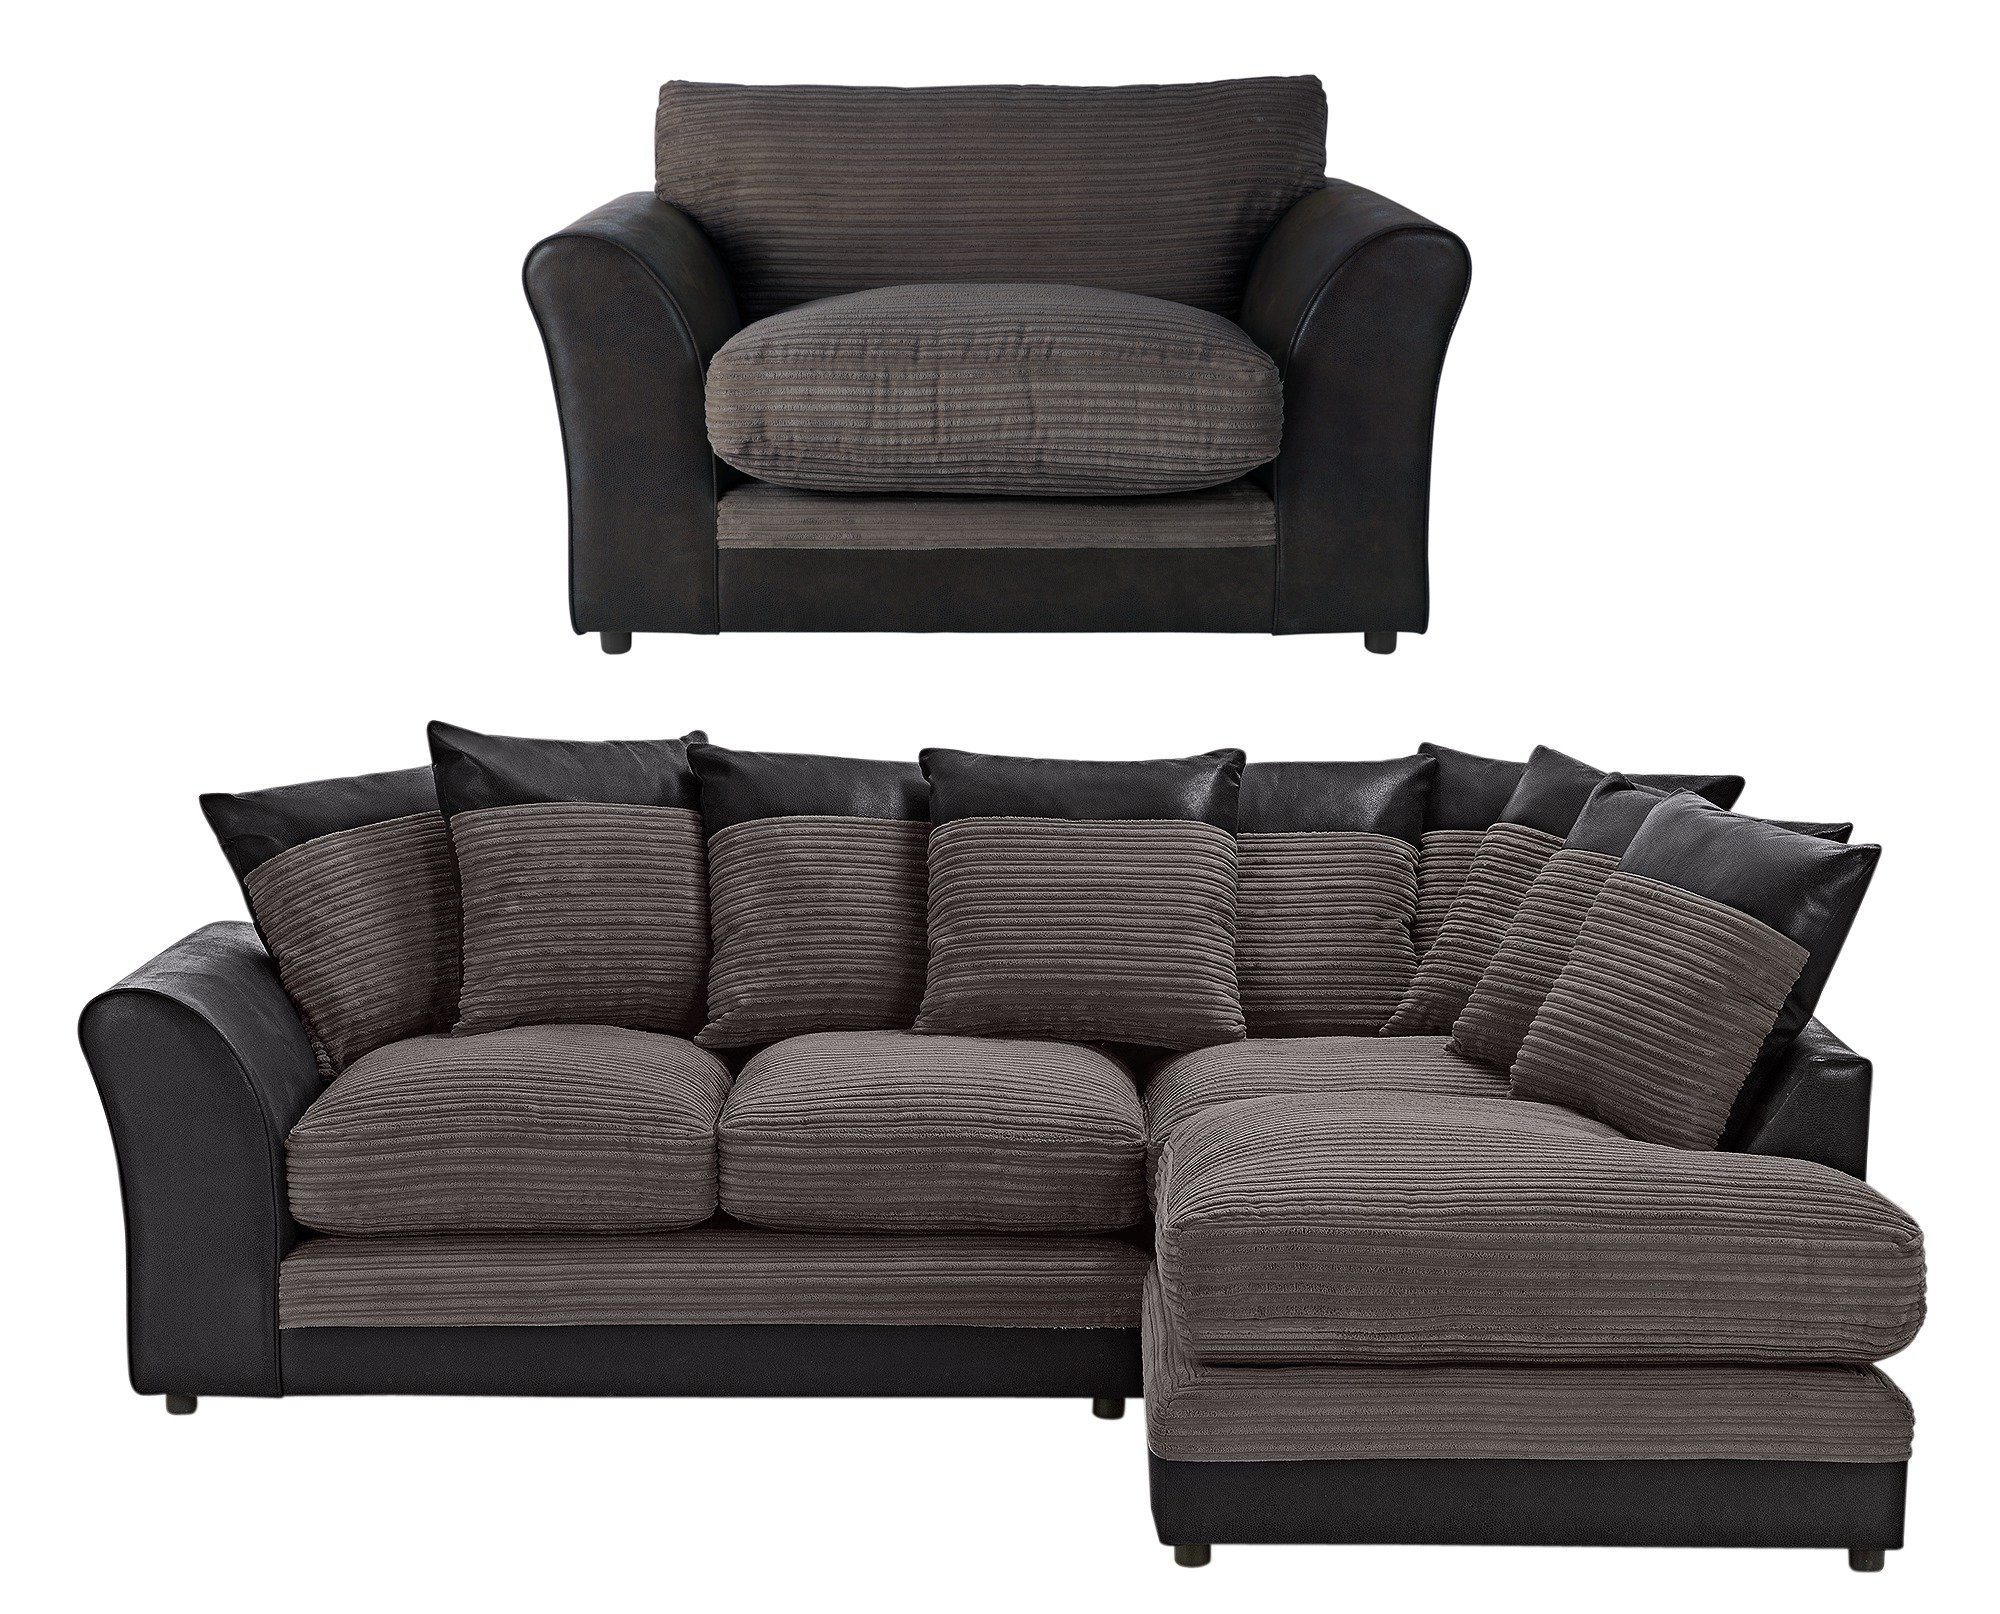 Argos Home Harley Large Right Corner Sofa & Chair - Charcoal